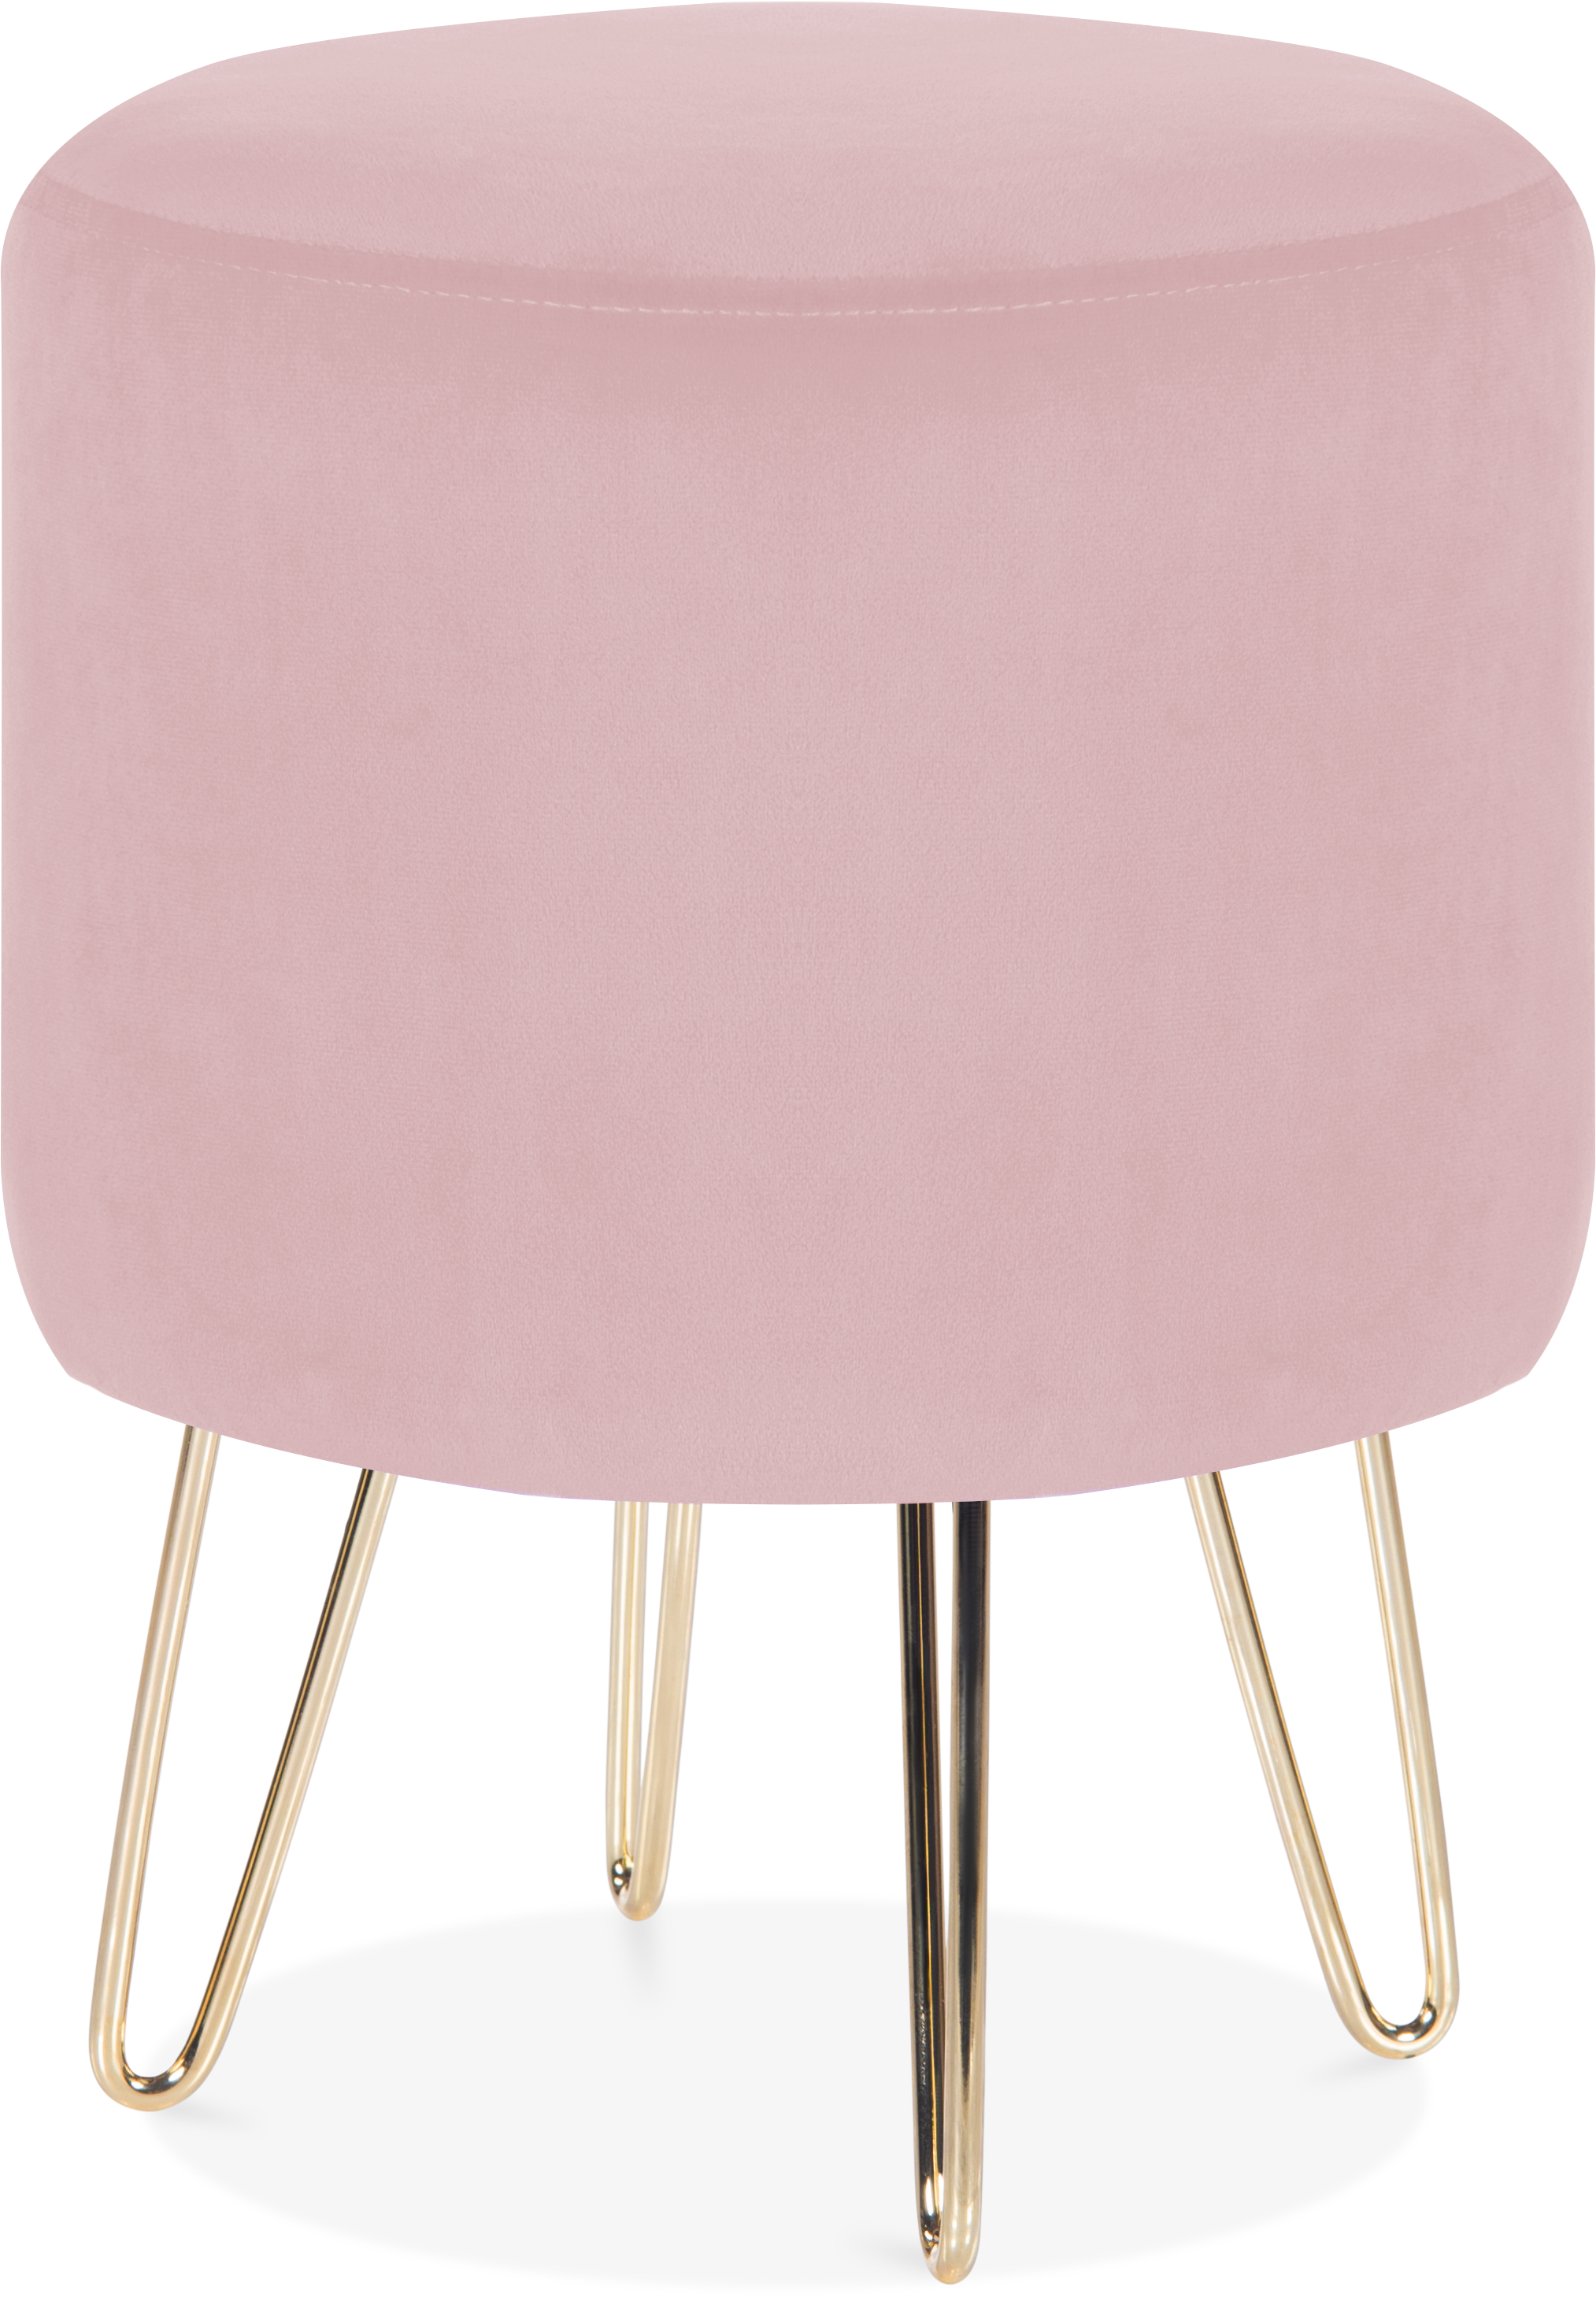 Velvet Paloma round footstool, £49, Cult Furniture